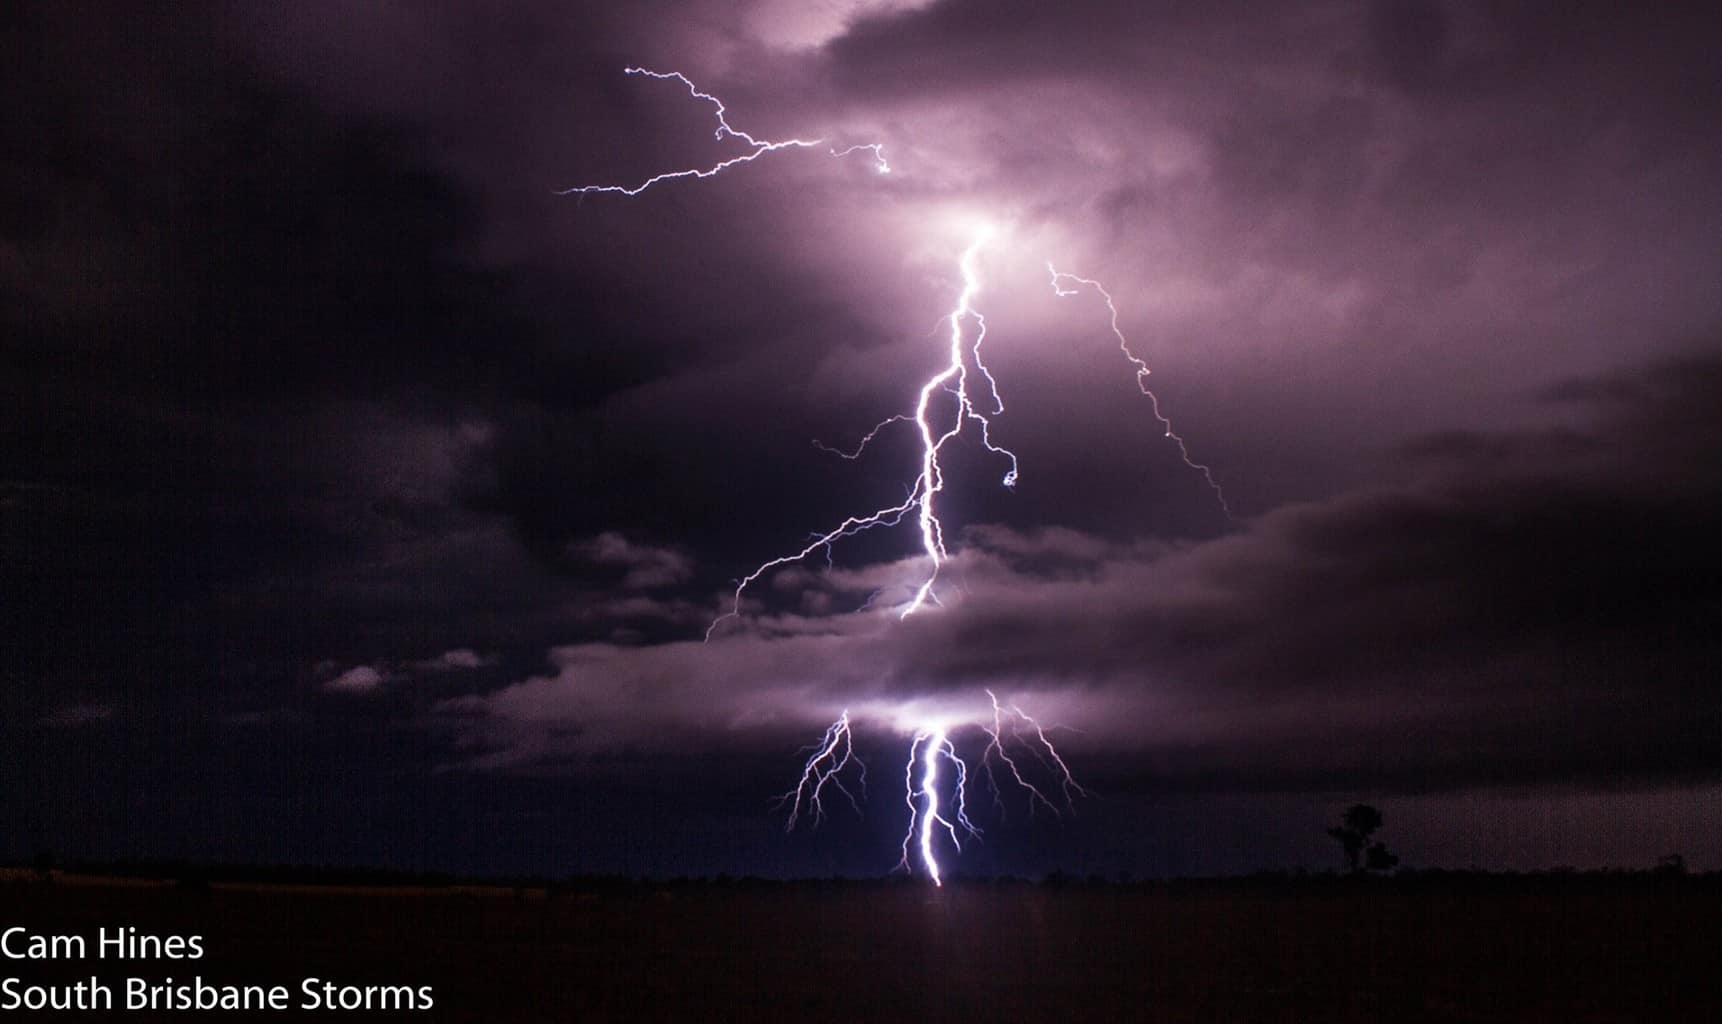 """From just under 2 weeks ago on the 28th of October near Talwood in western QLD. This storm was a late """"cap breaker"""" and developed in an area ripe for supercell development. This one exploded just on dusk and produced one of the most incredible lightning displays I've ever seen."""